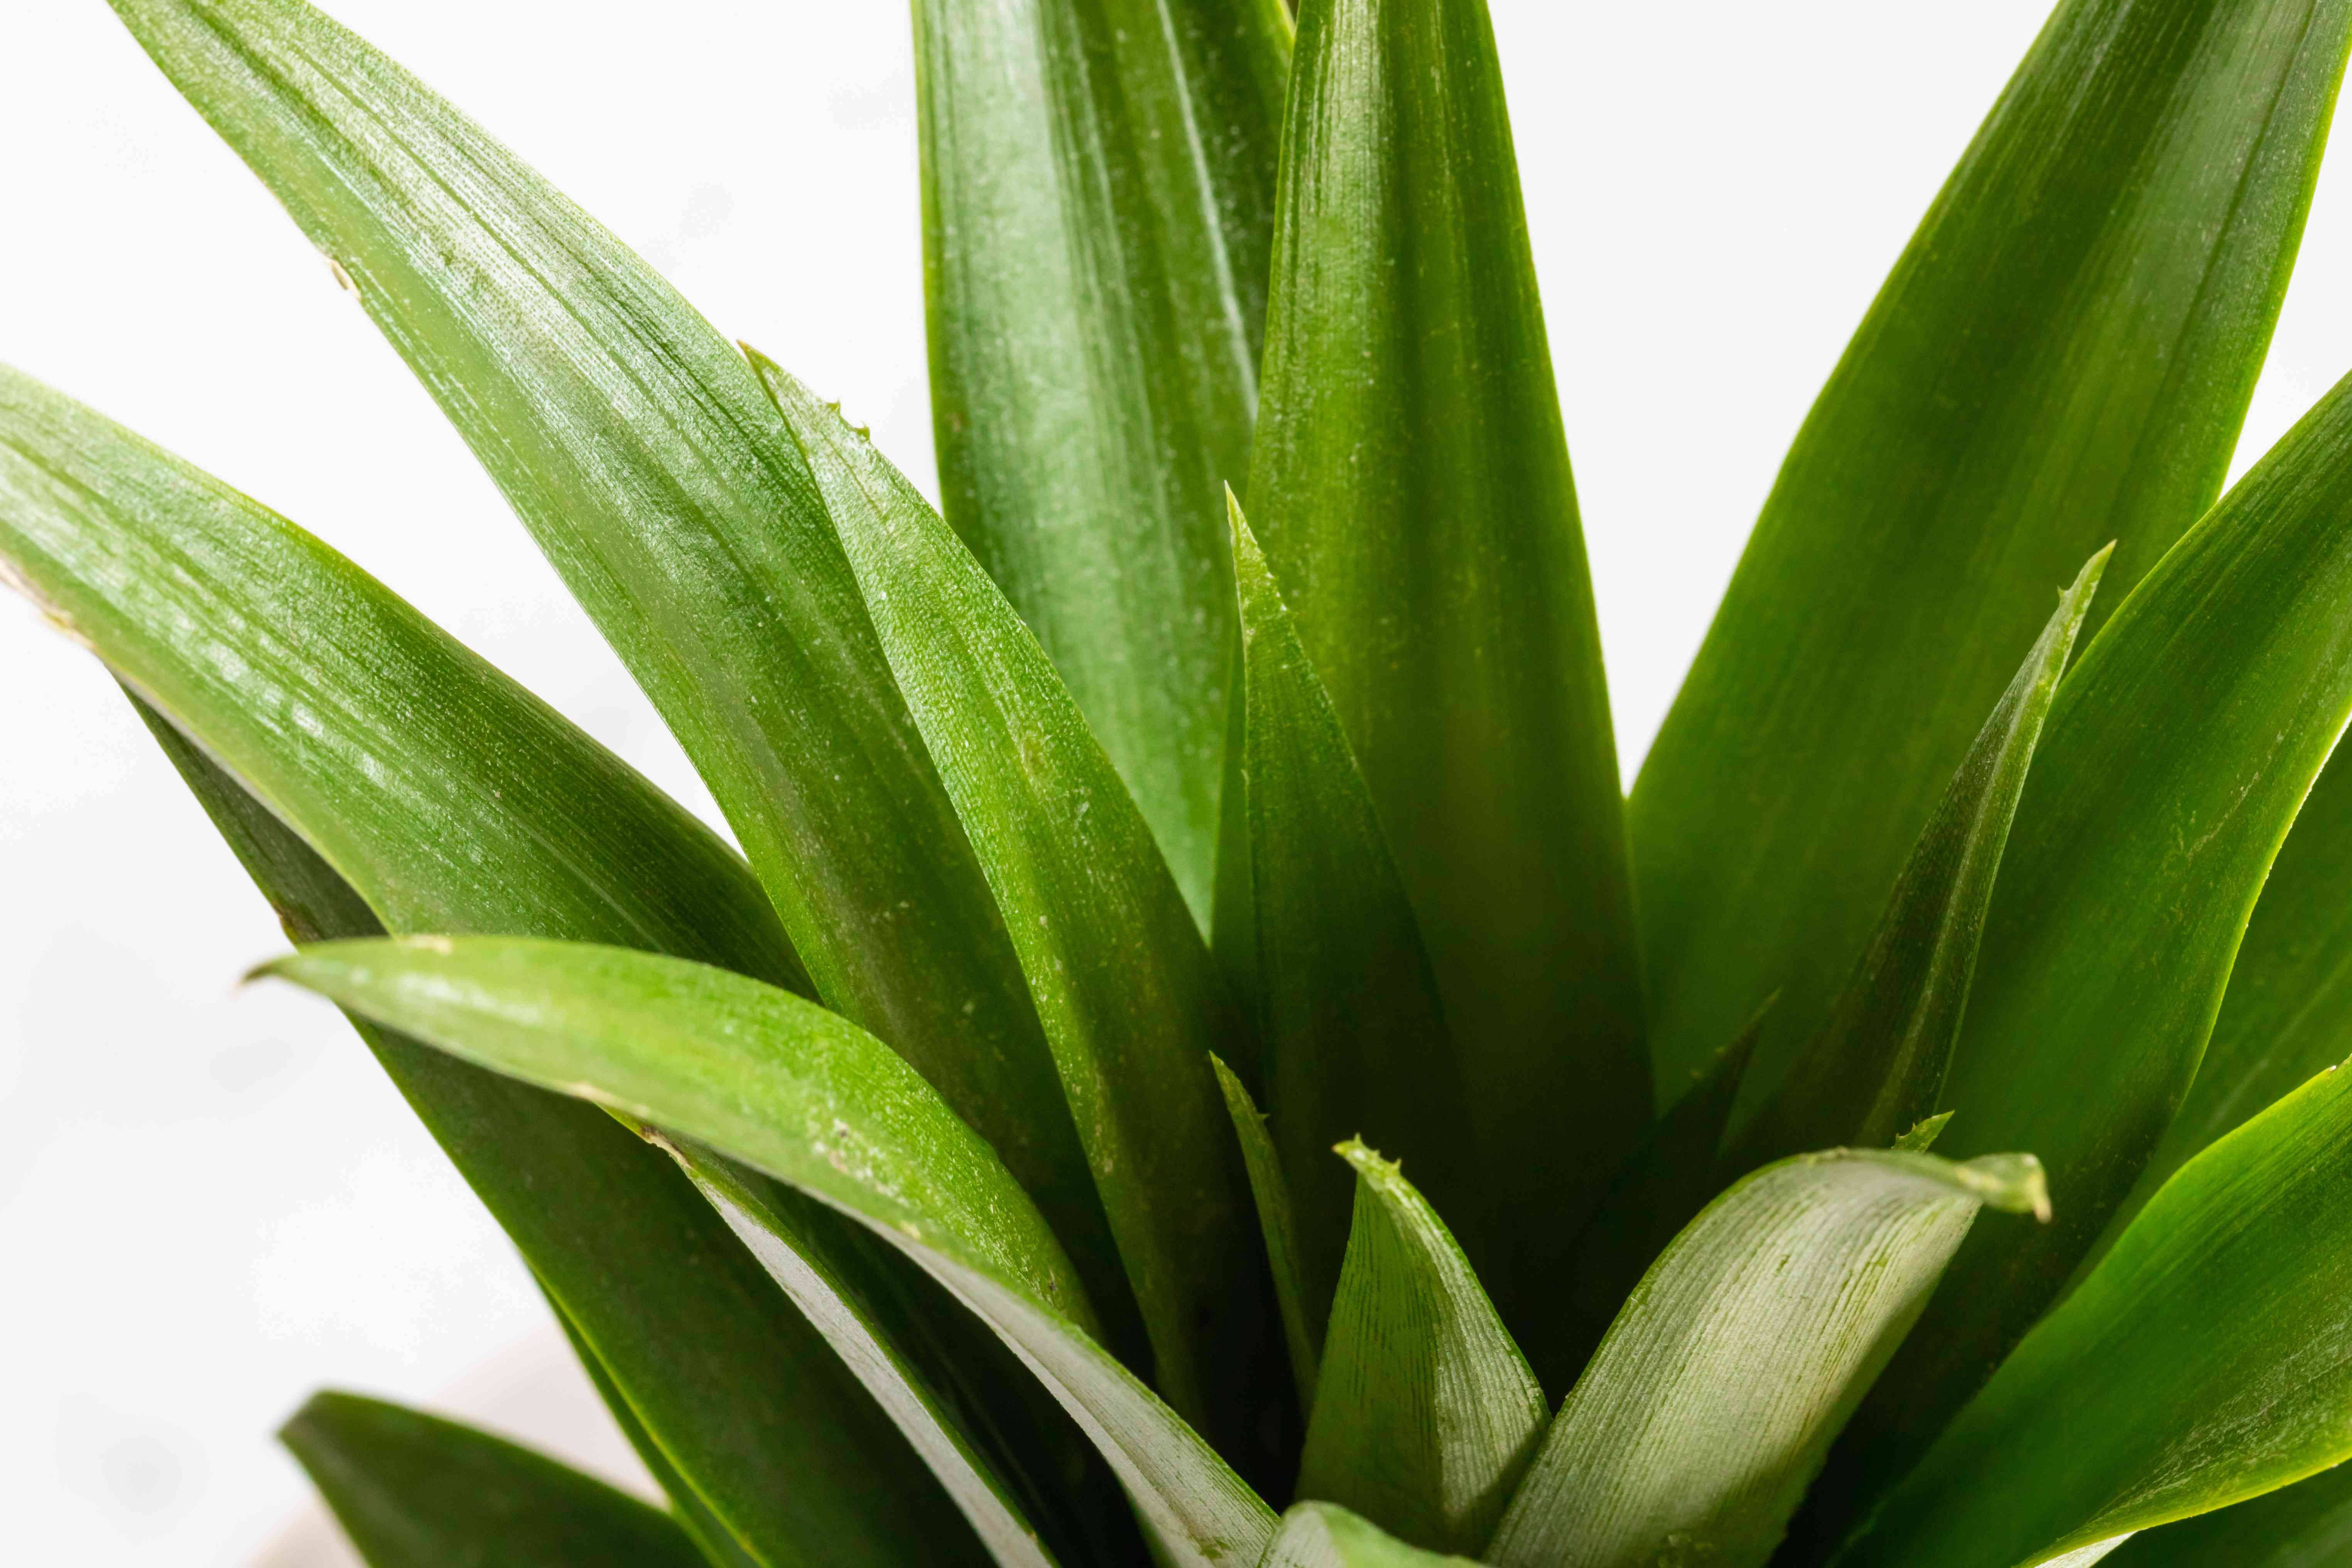 closeup of a pineapple plant